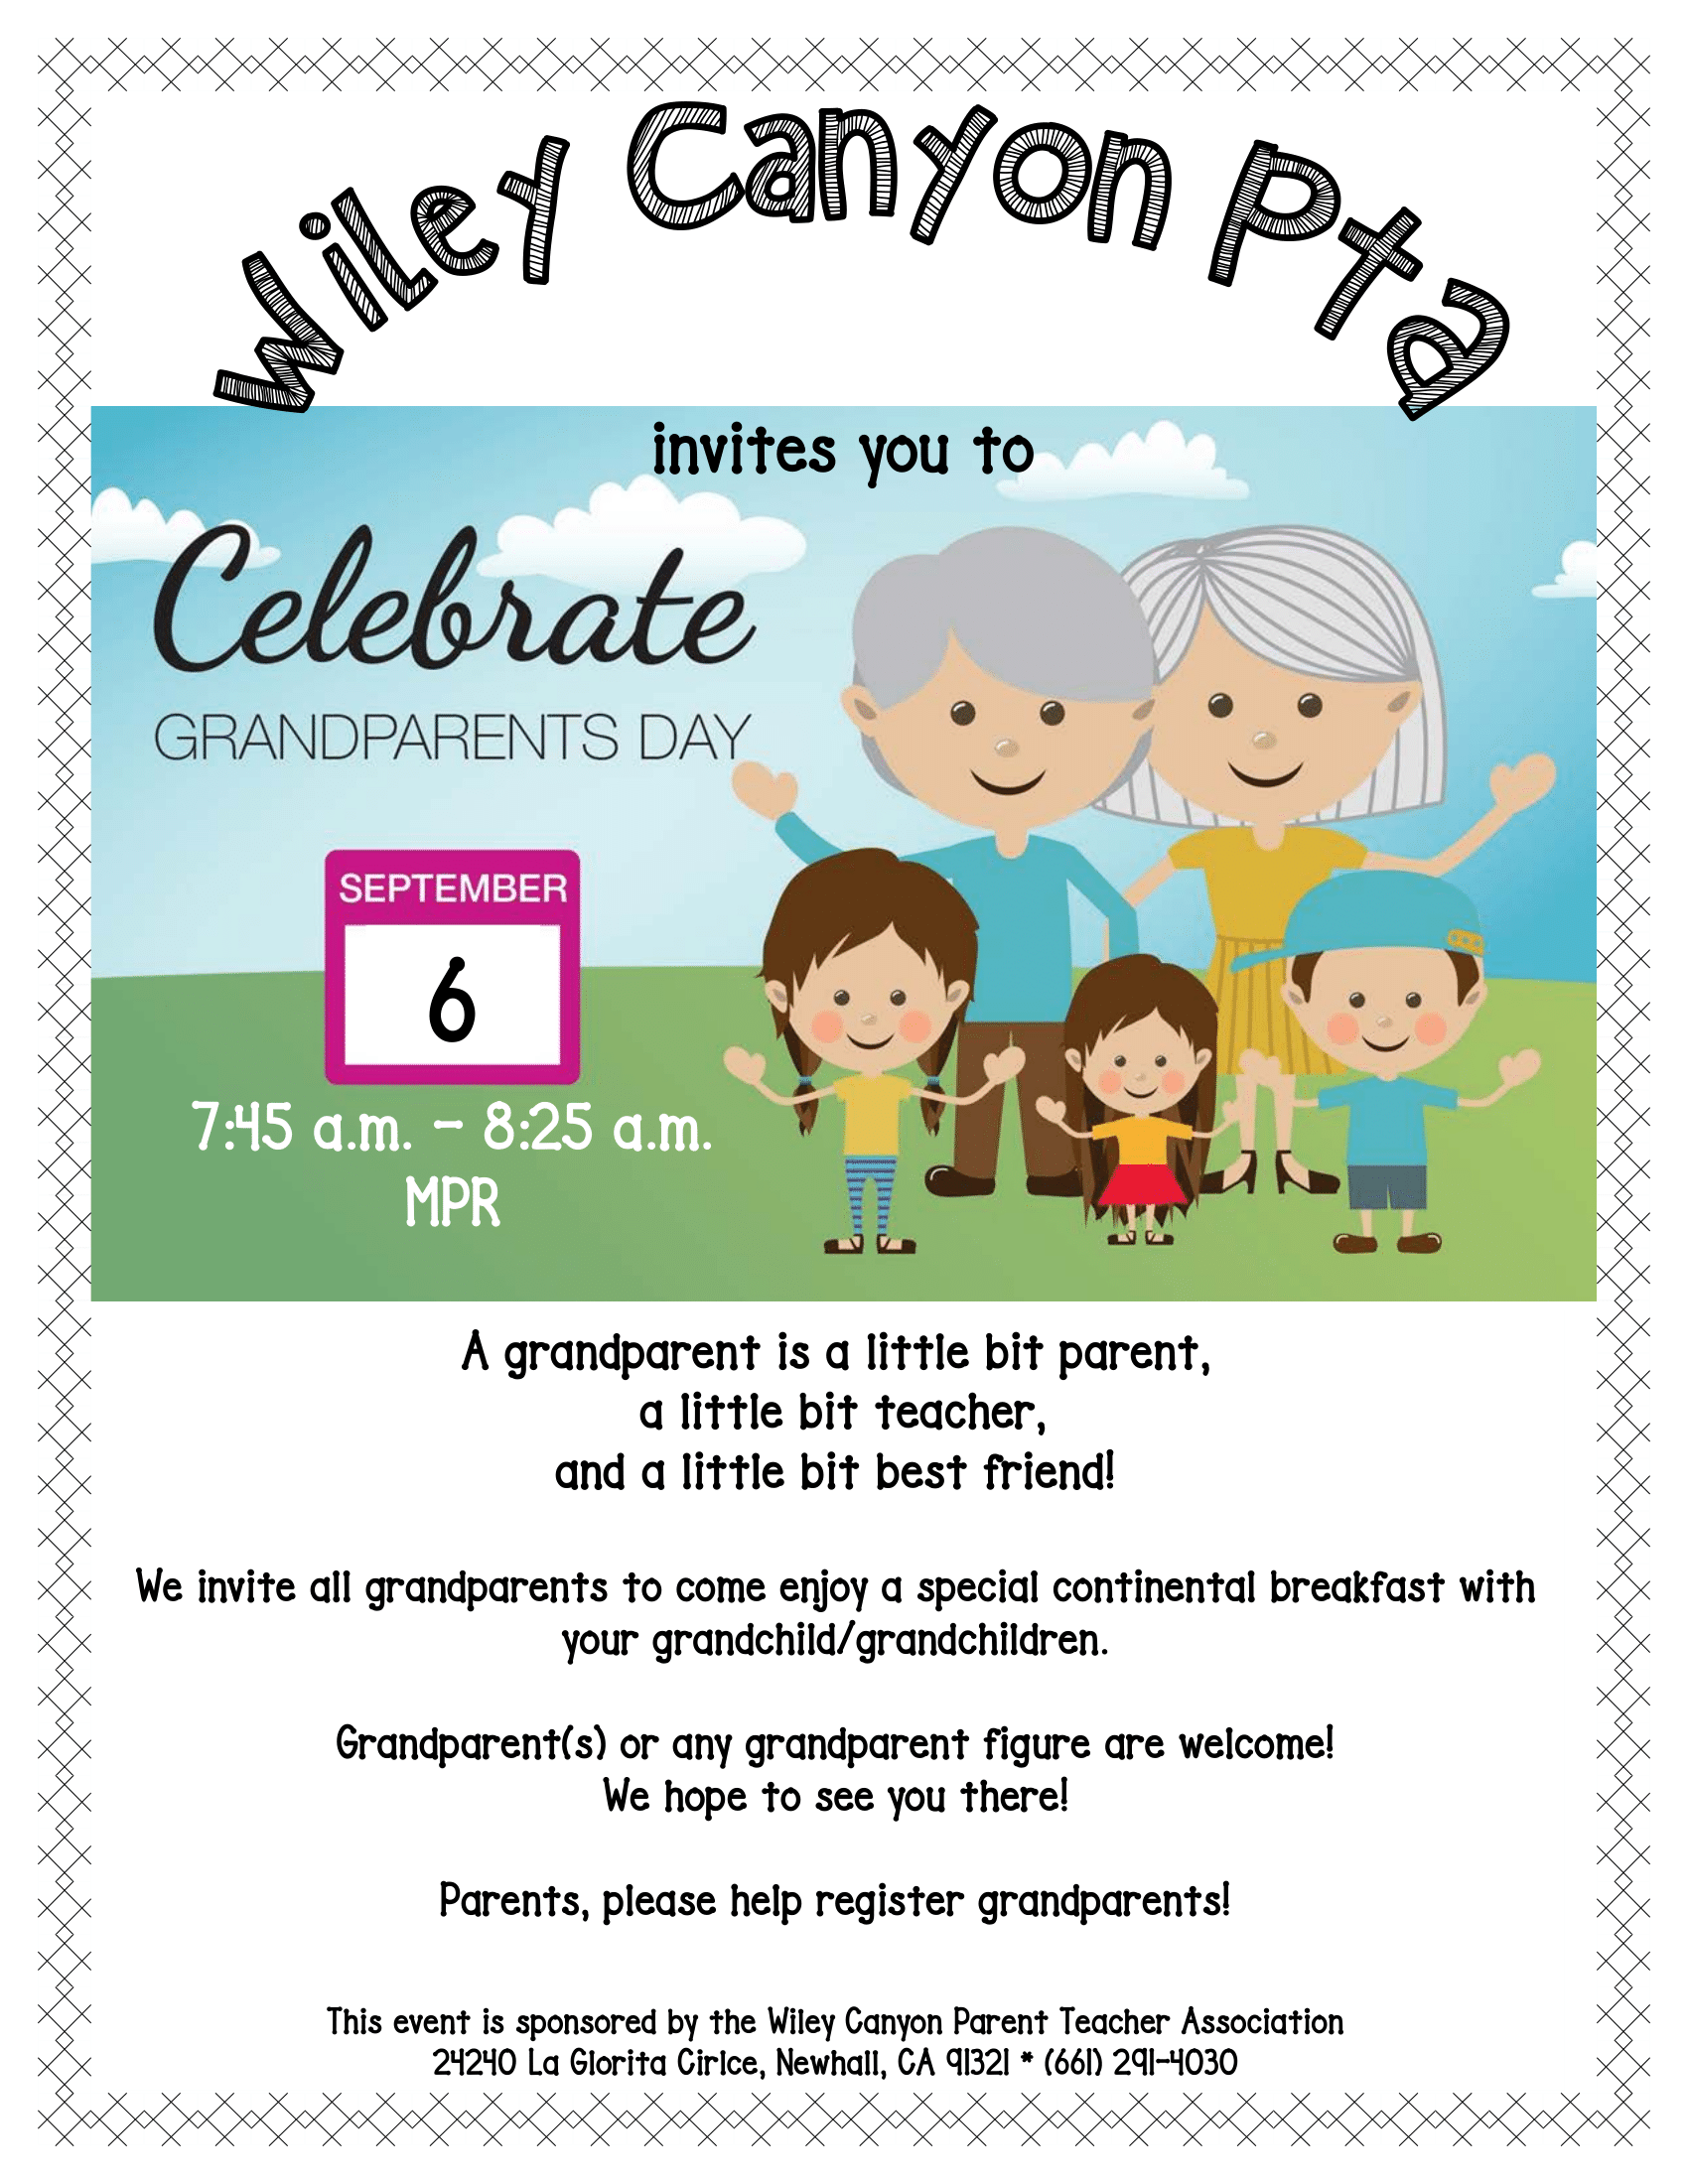 2019-20 PTA Grandparent's Day Flyer